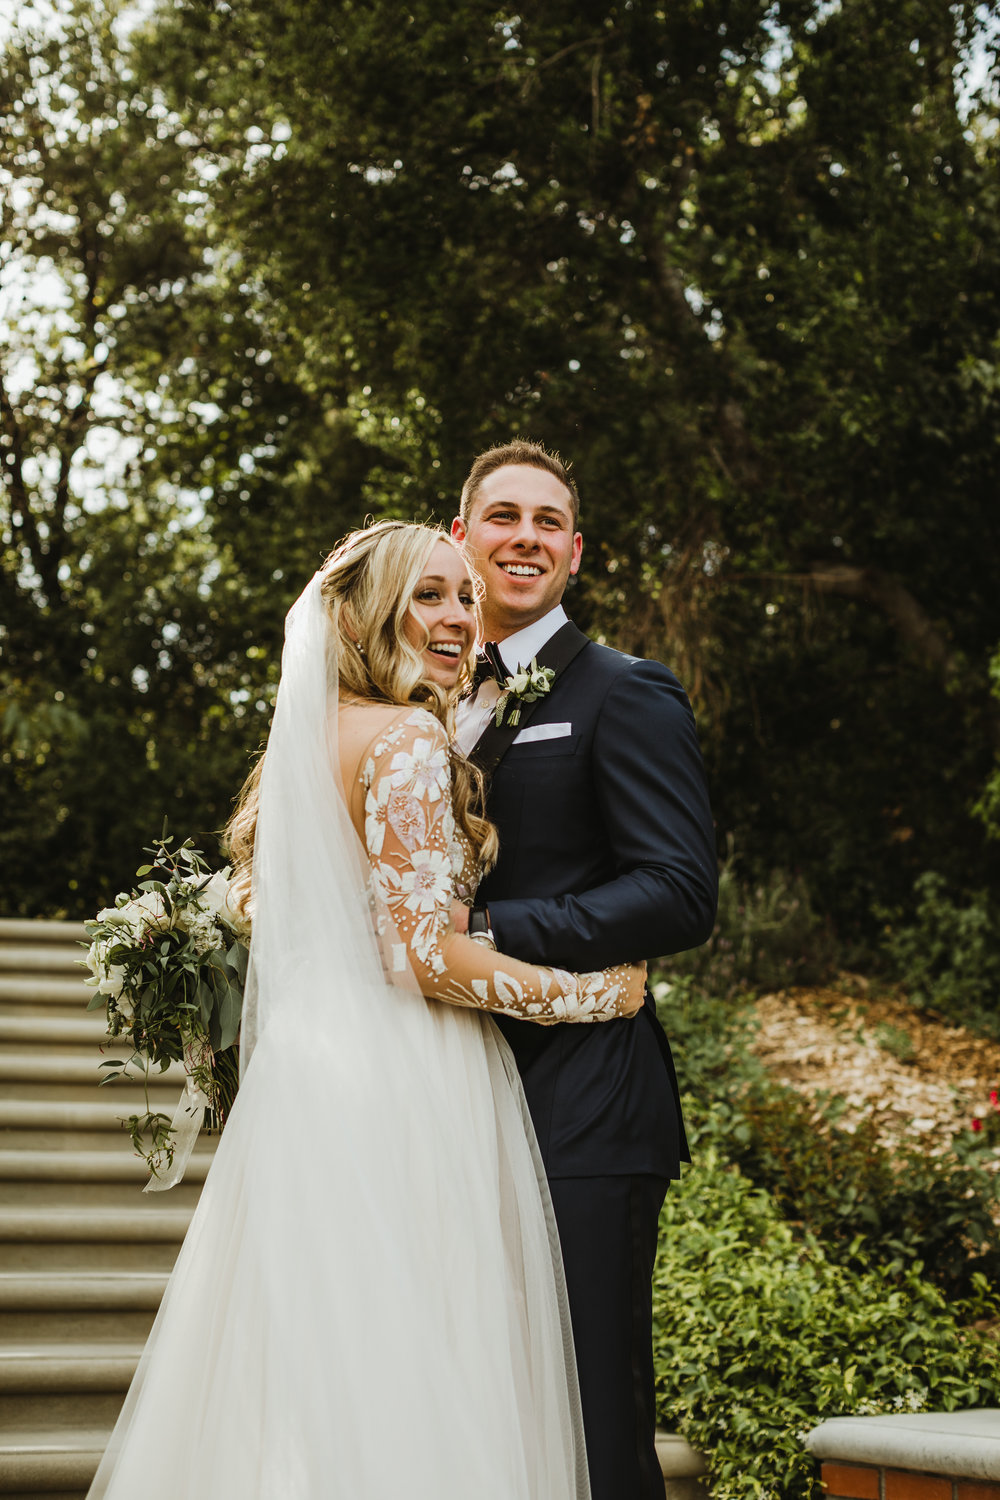 Quail Ranch Wedding in Simi Valley, California Photographed by Hannah Costello